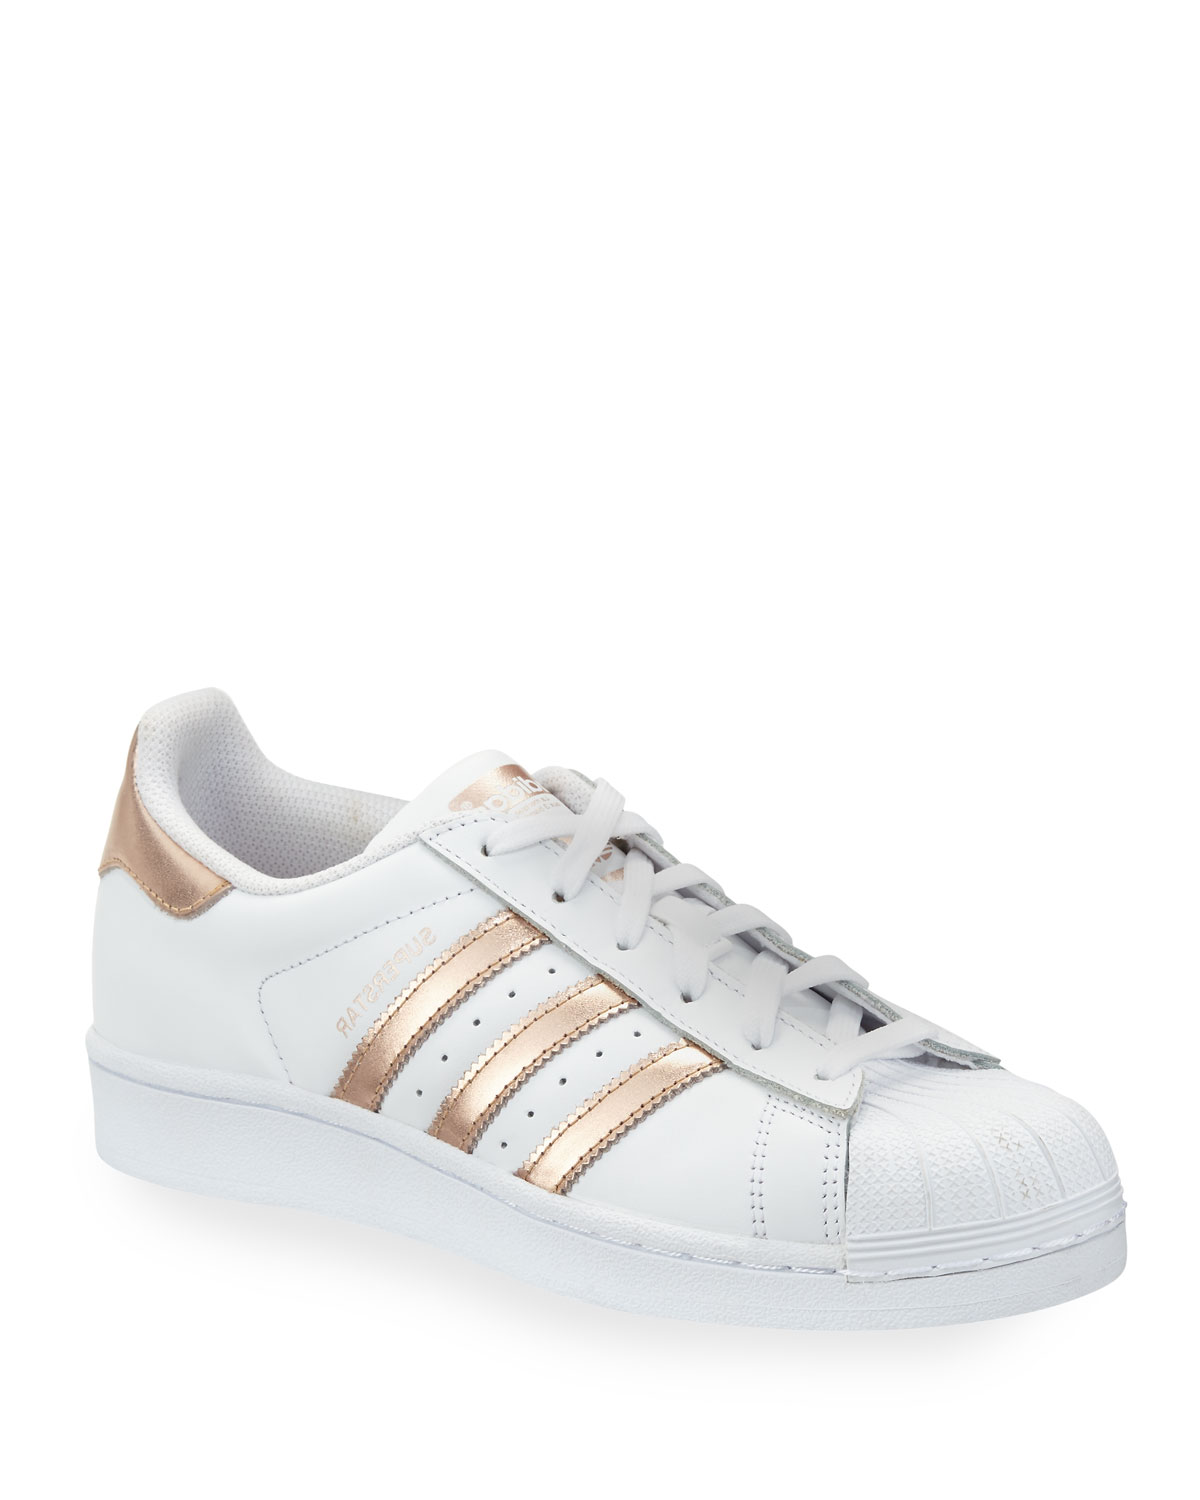 Superstar Original Fashion Sneakers, White/Rose Gold